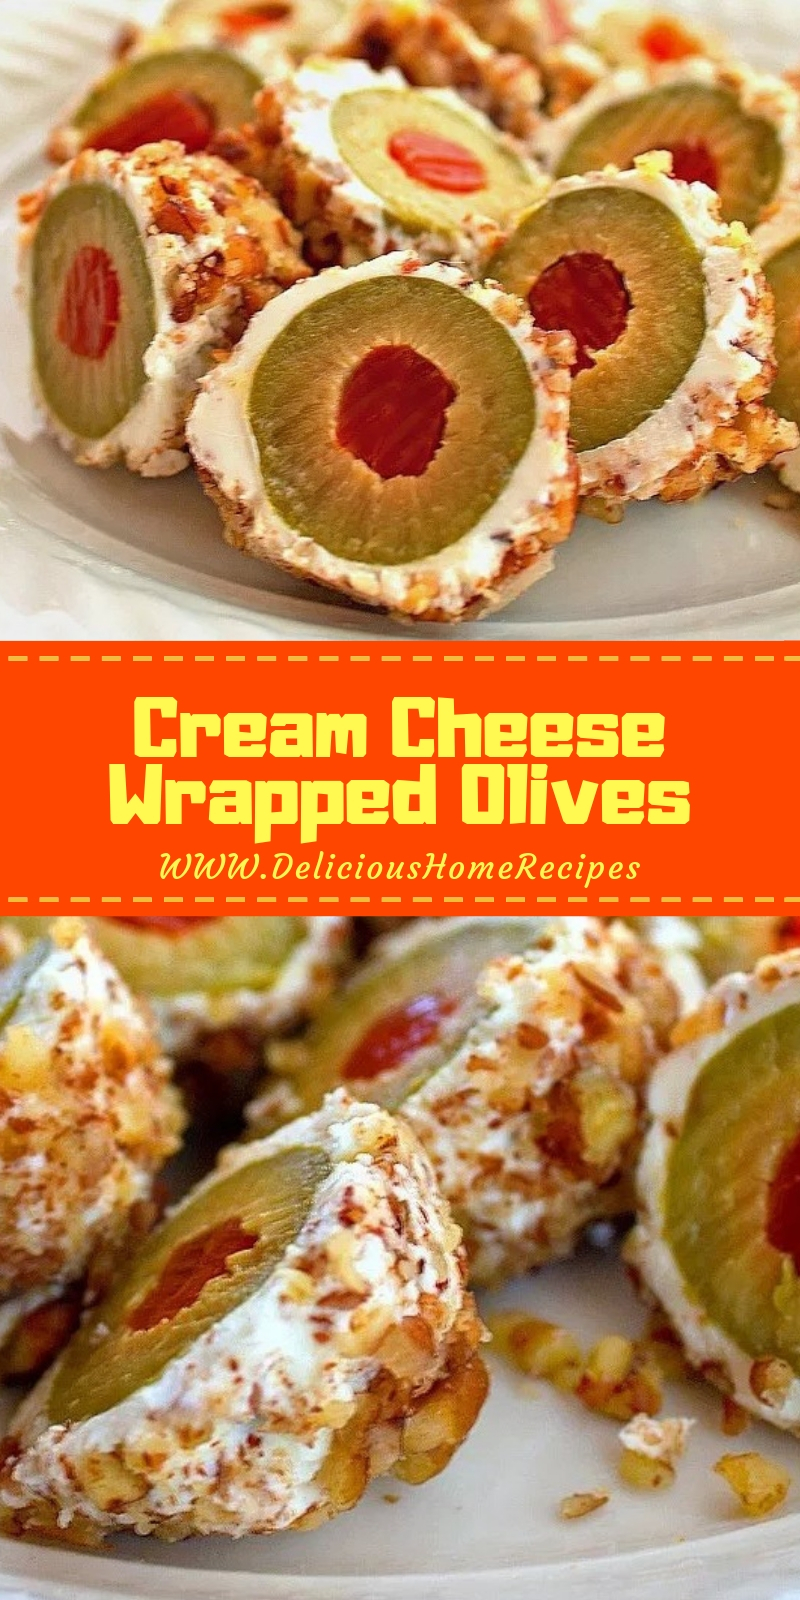 Cream Cheese Wrapped Olives Recipe